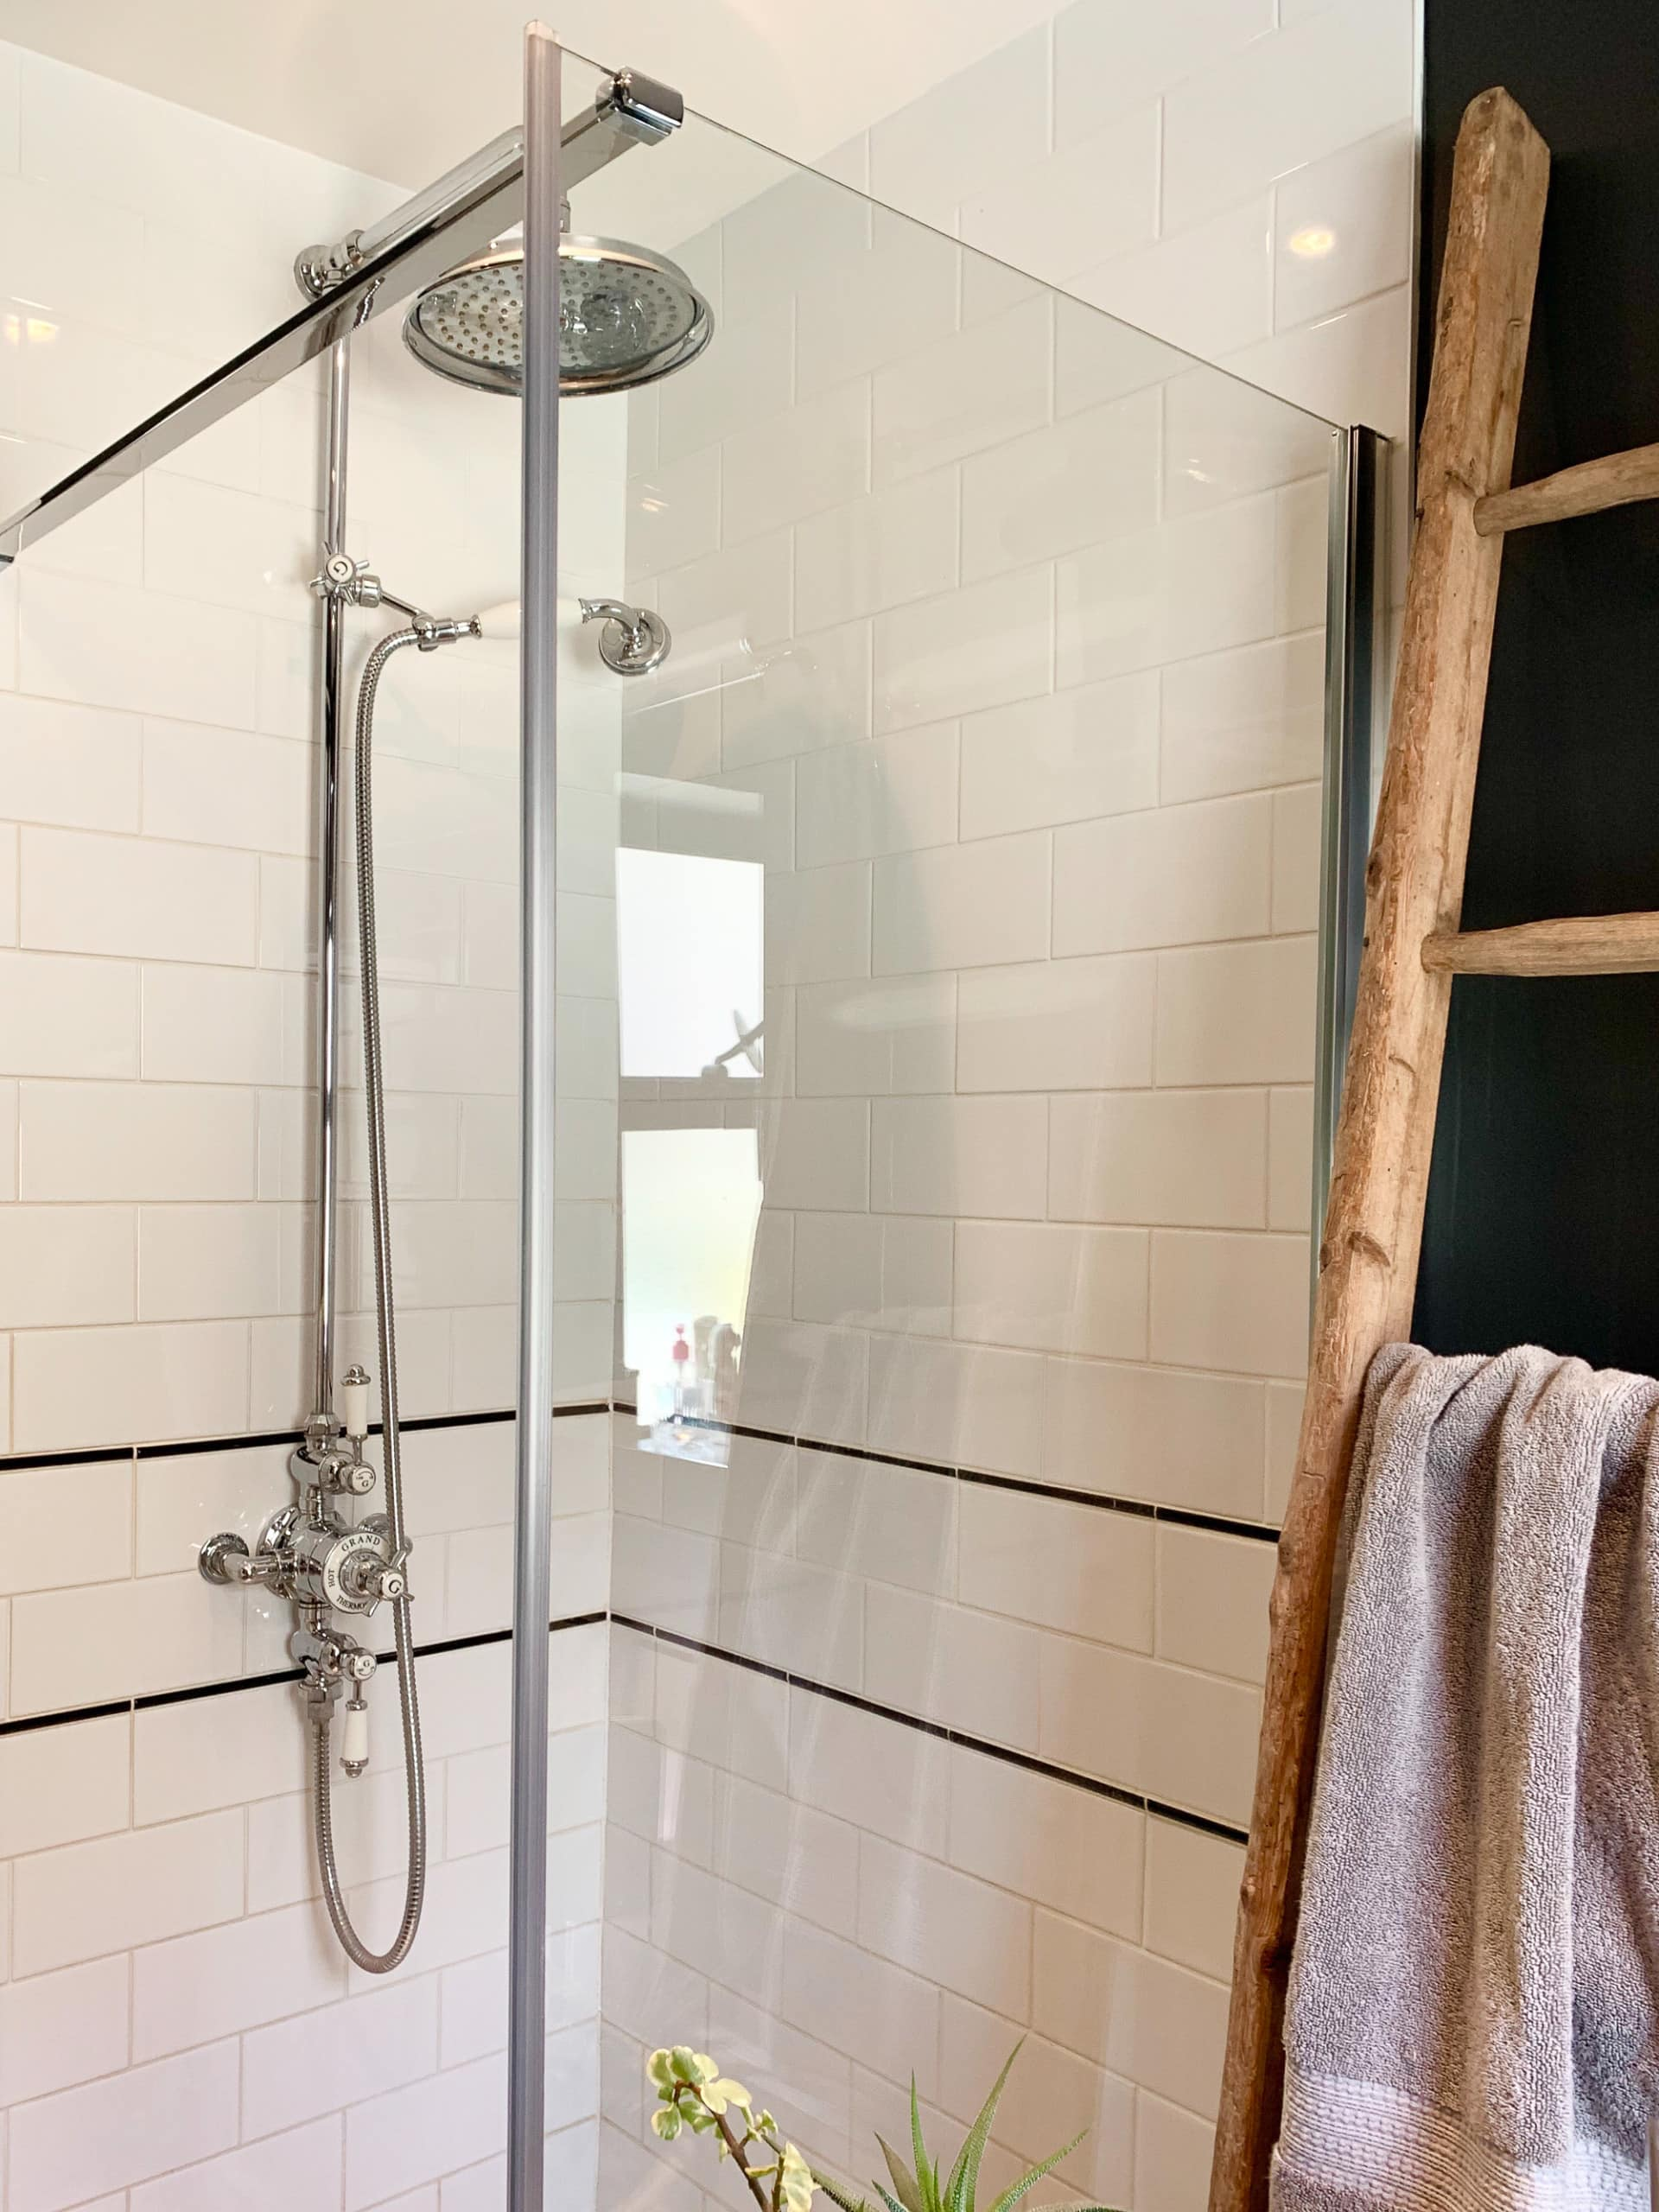 Tiled shower in a bathroom